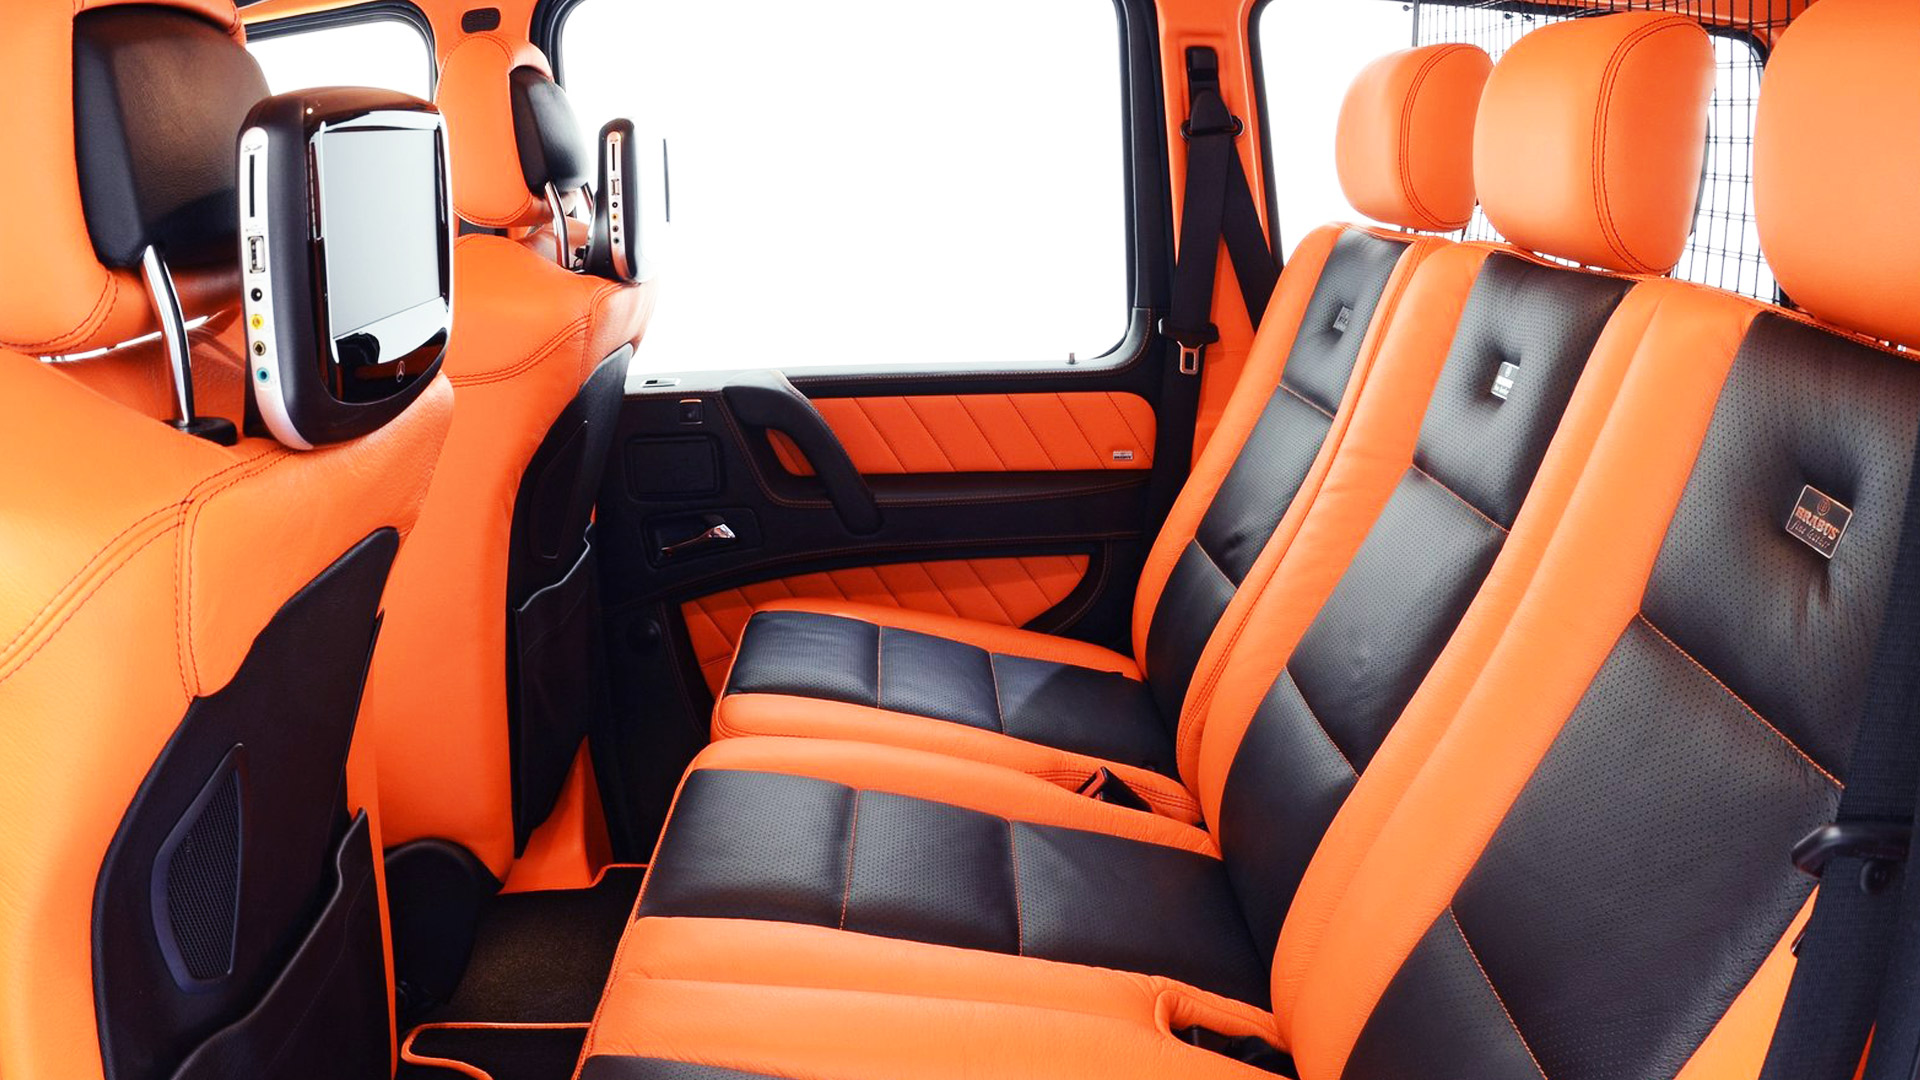 2013 Brabus B63-620 Widestar Rear Interior